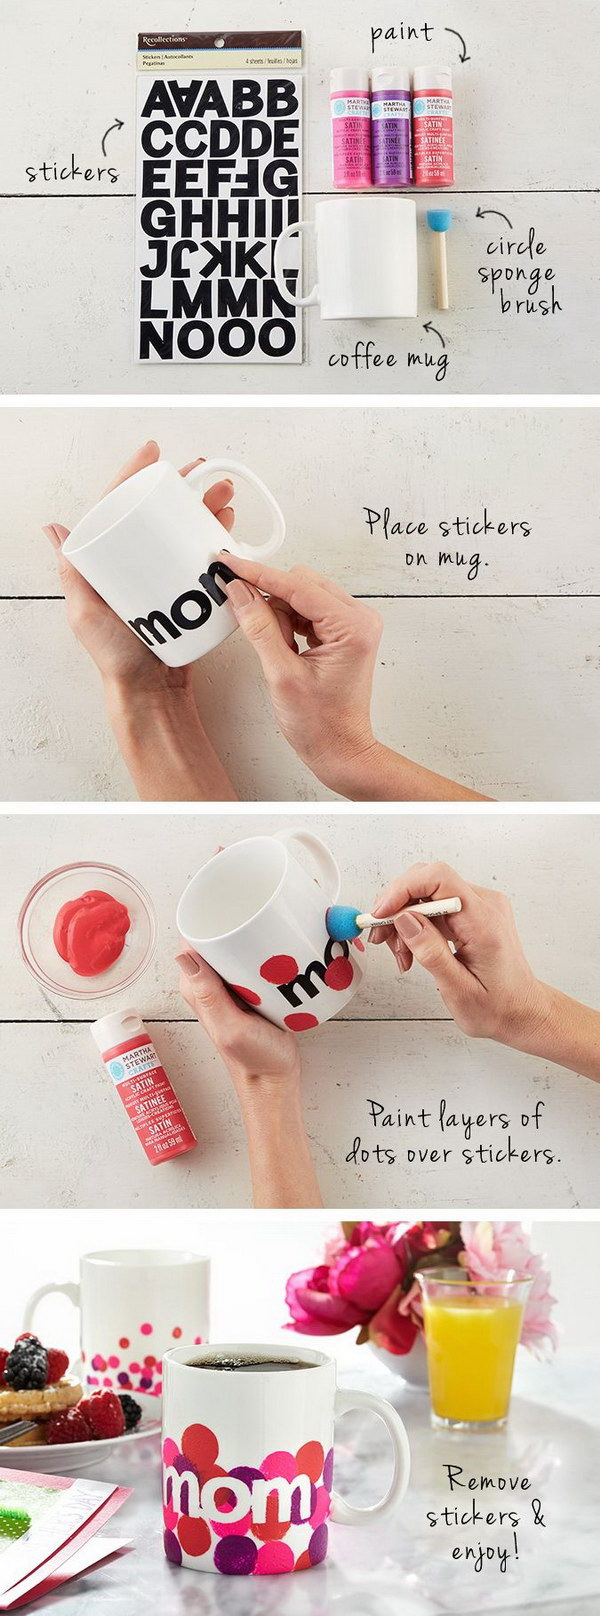 20 heartfelt diy gifts for mom 2017 Perfect christmas gifts for mom